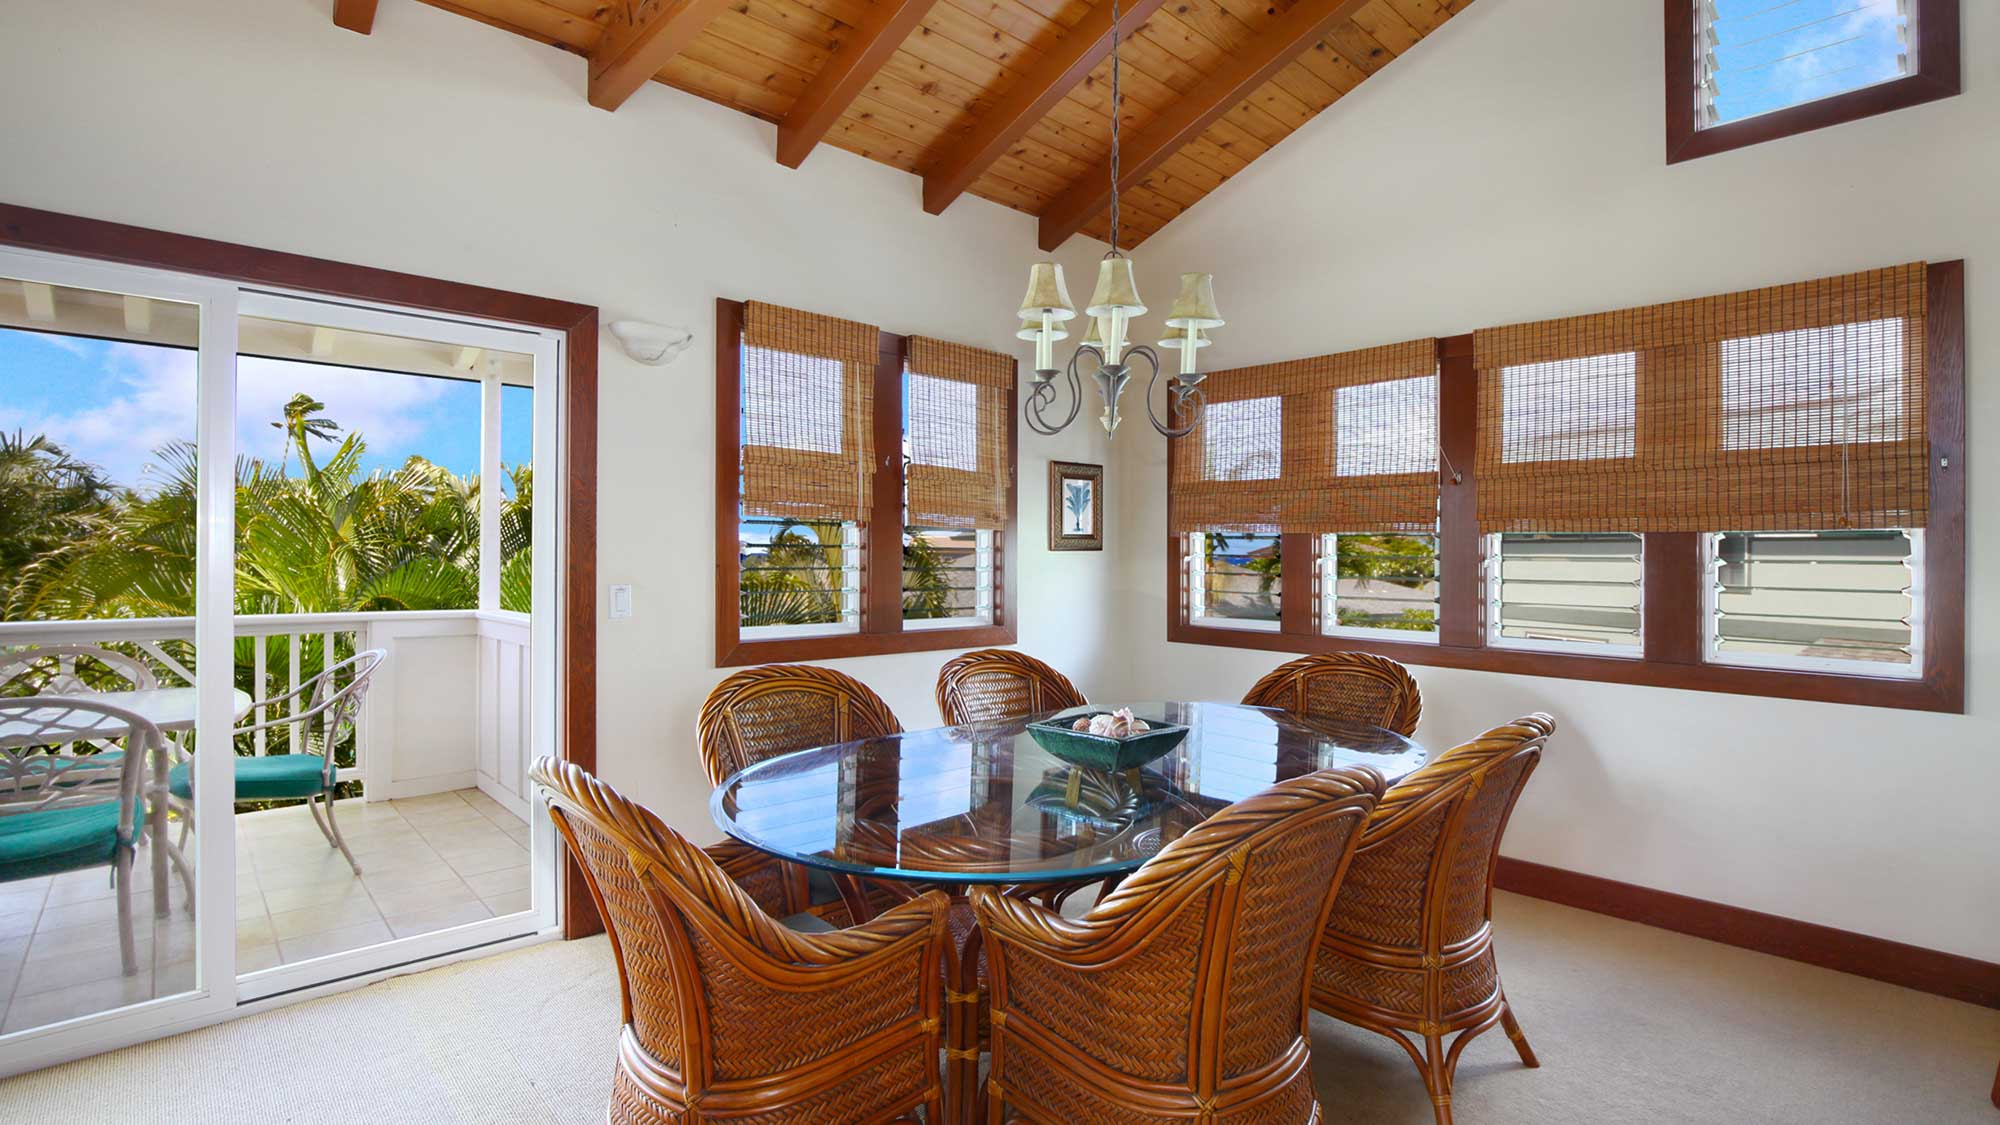 Akala Pua Cottage -Dining Room & Lanai View - Parrish Kauai